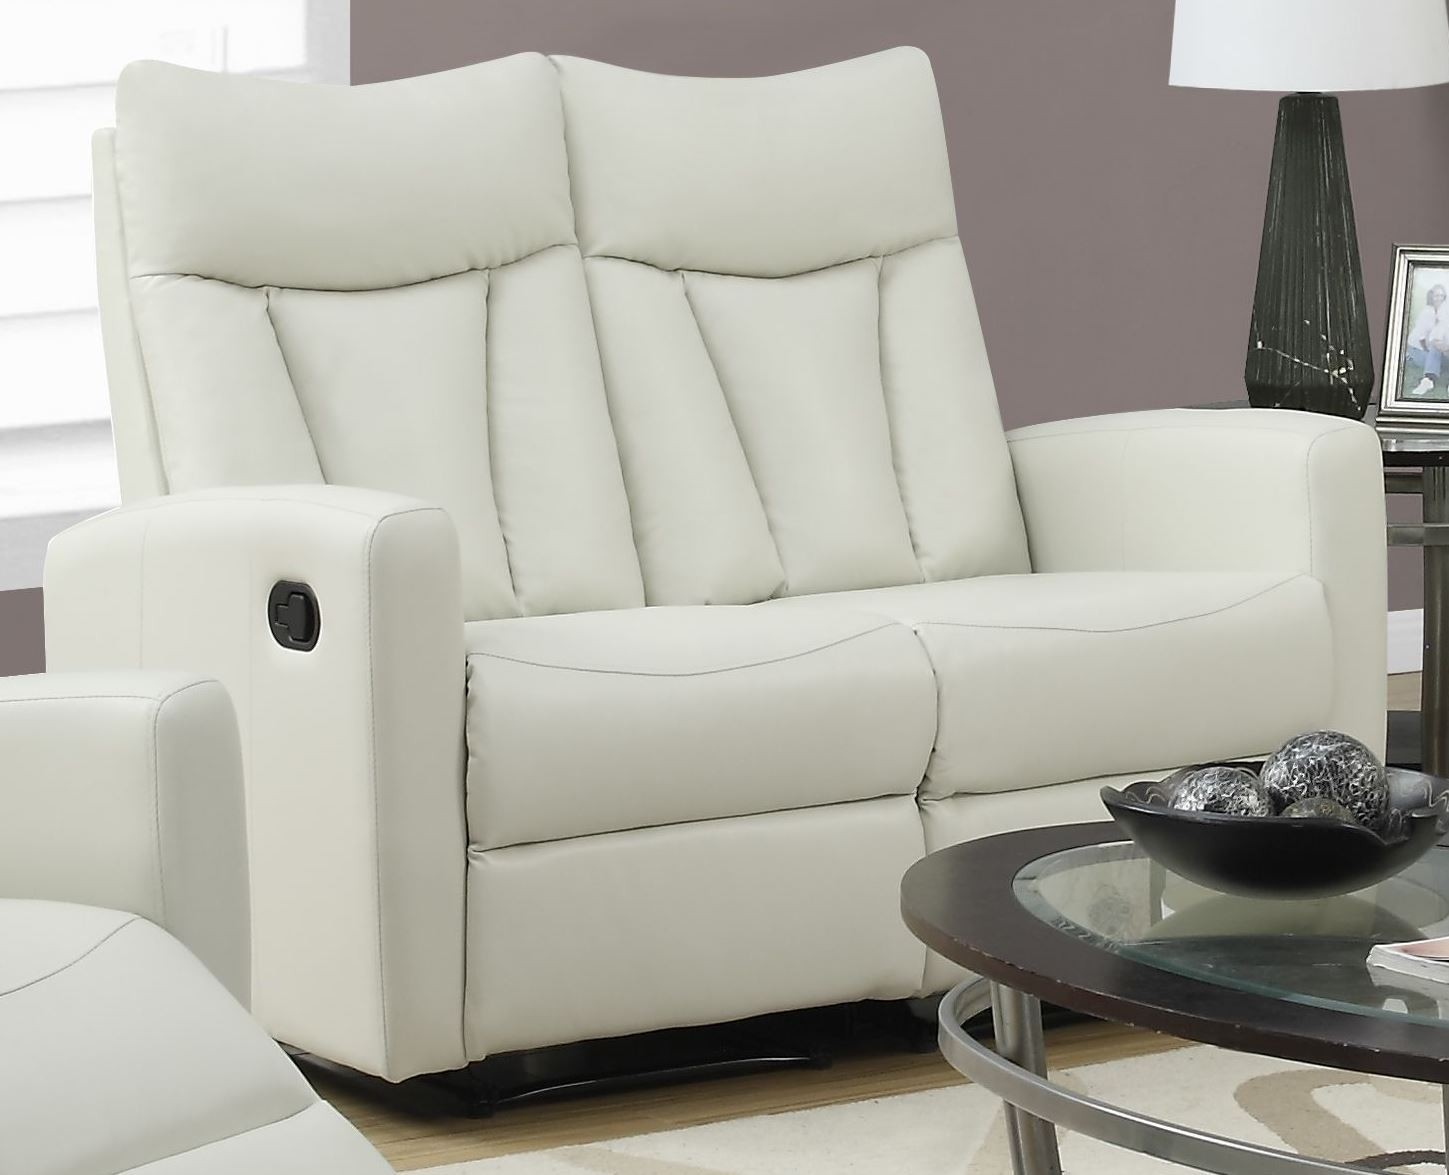 817iv 2 Ivory Bonded Leather Reclining Loveseat 87iv 2 Monarch